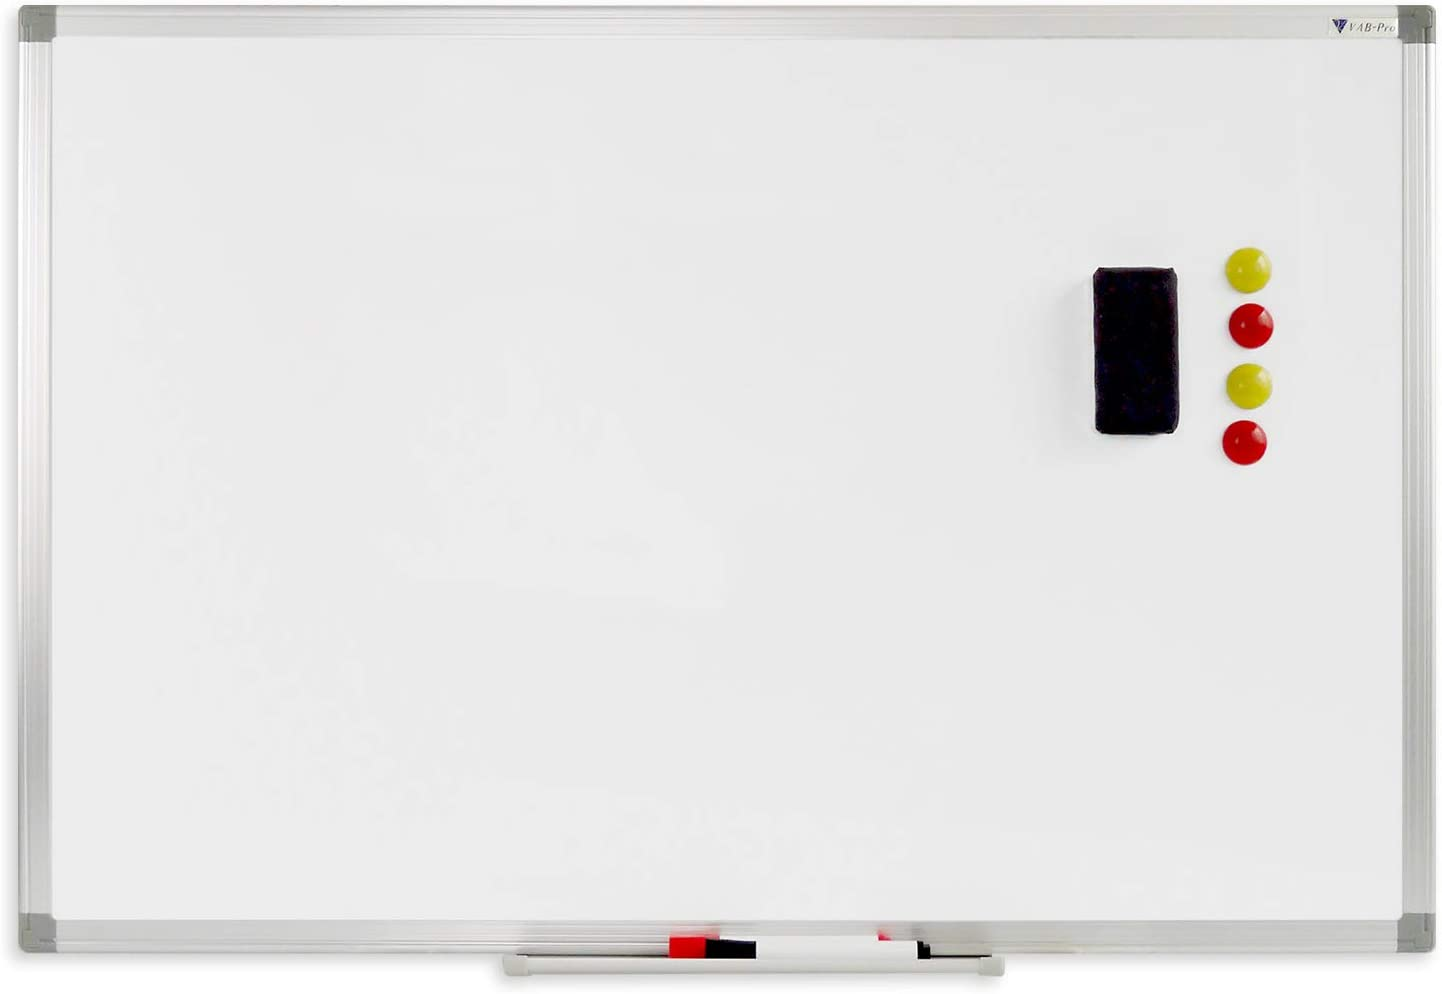 V VAB-PRO 24x36 inch Magnetic Dry Erase White Board w/Pen Tray, Accessories & Installation Kit; Wall Mount, Aluminum Frame. for Office, Home and School- WYP1272436